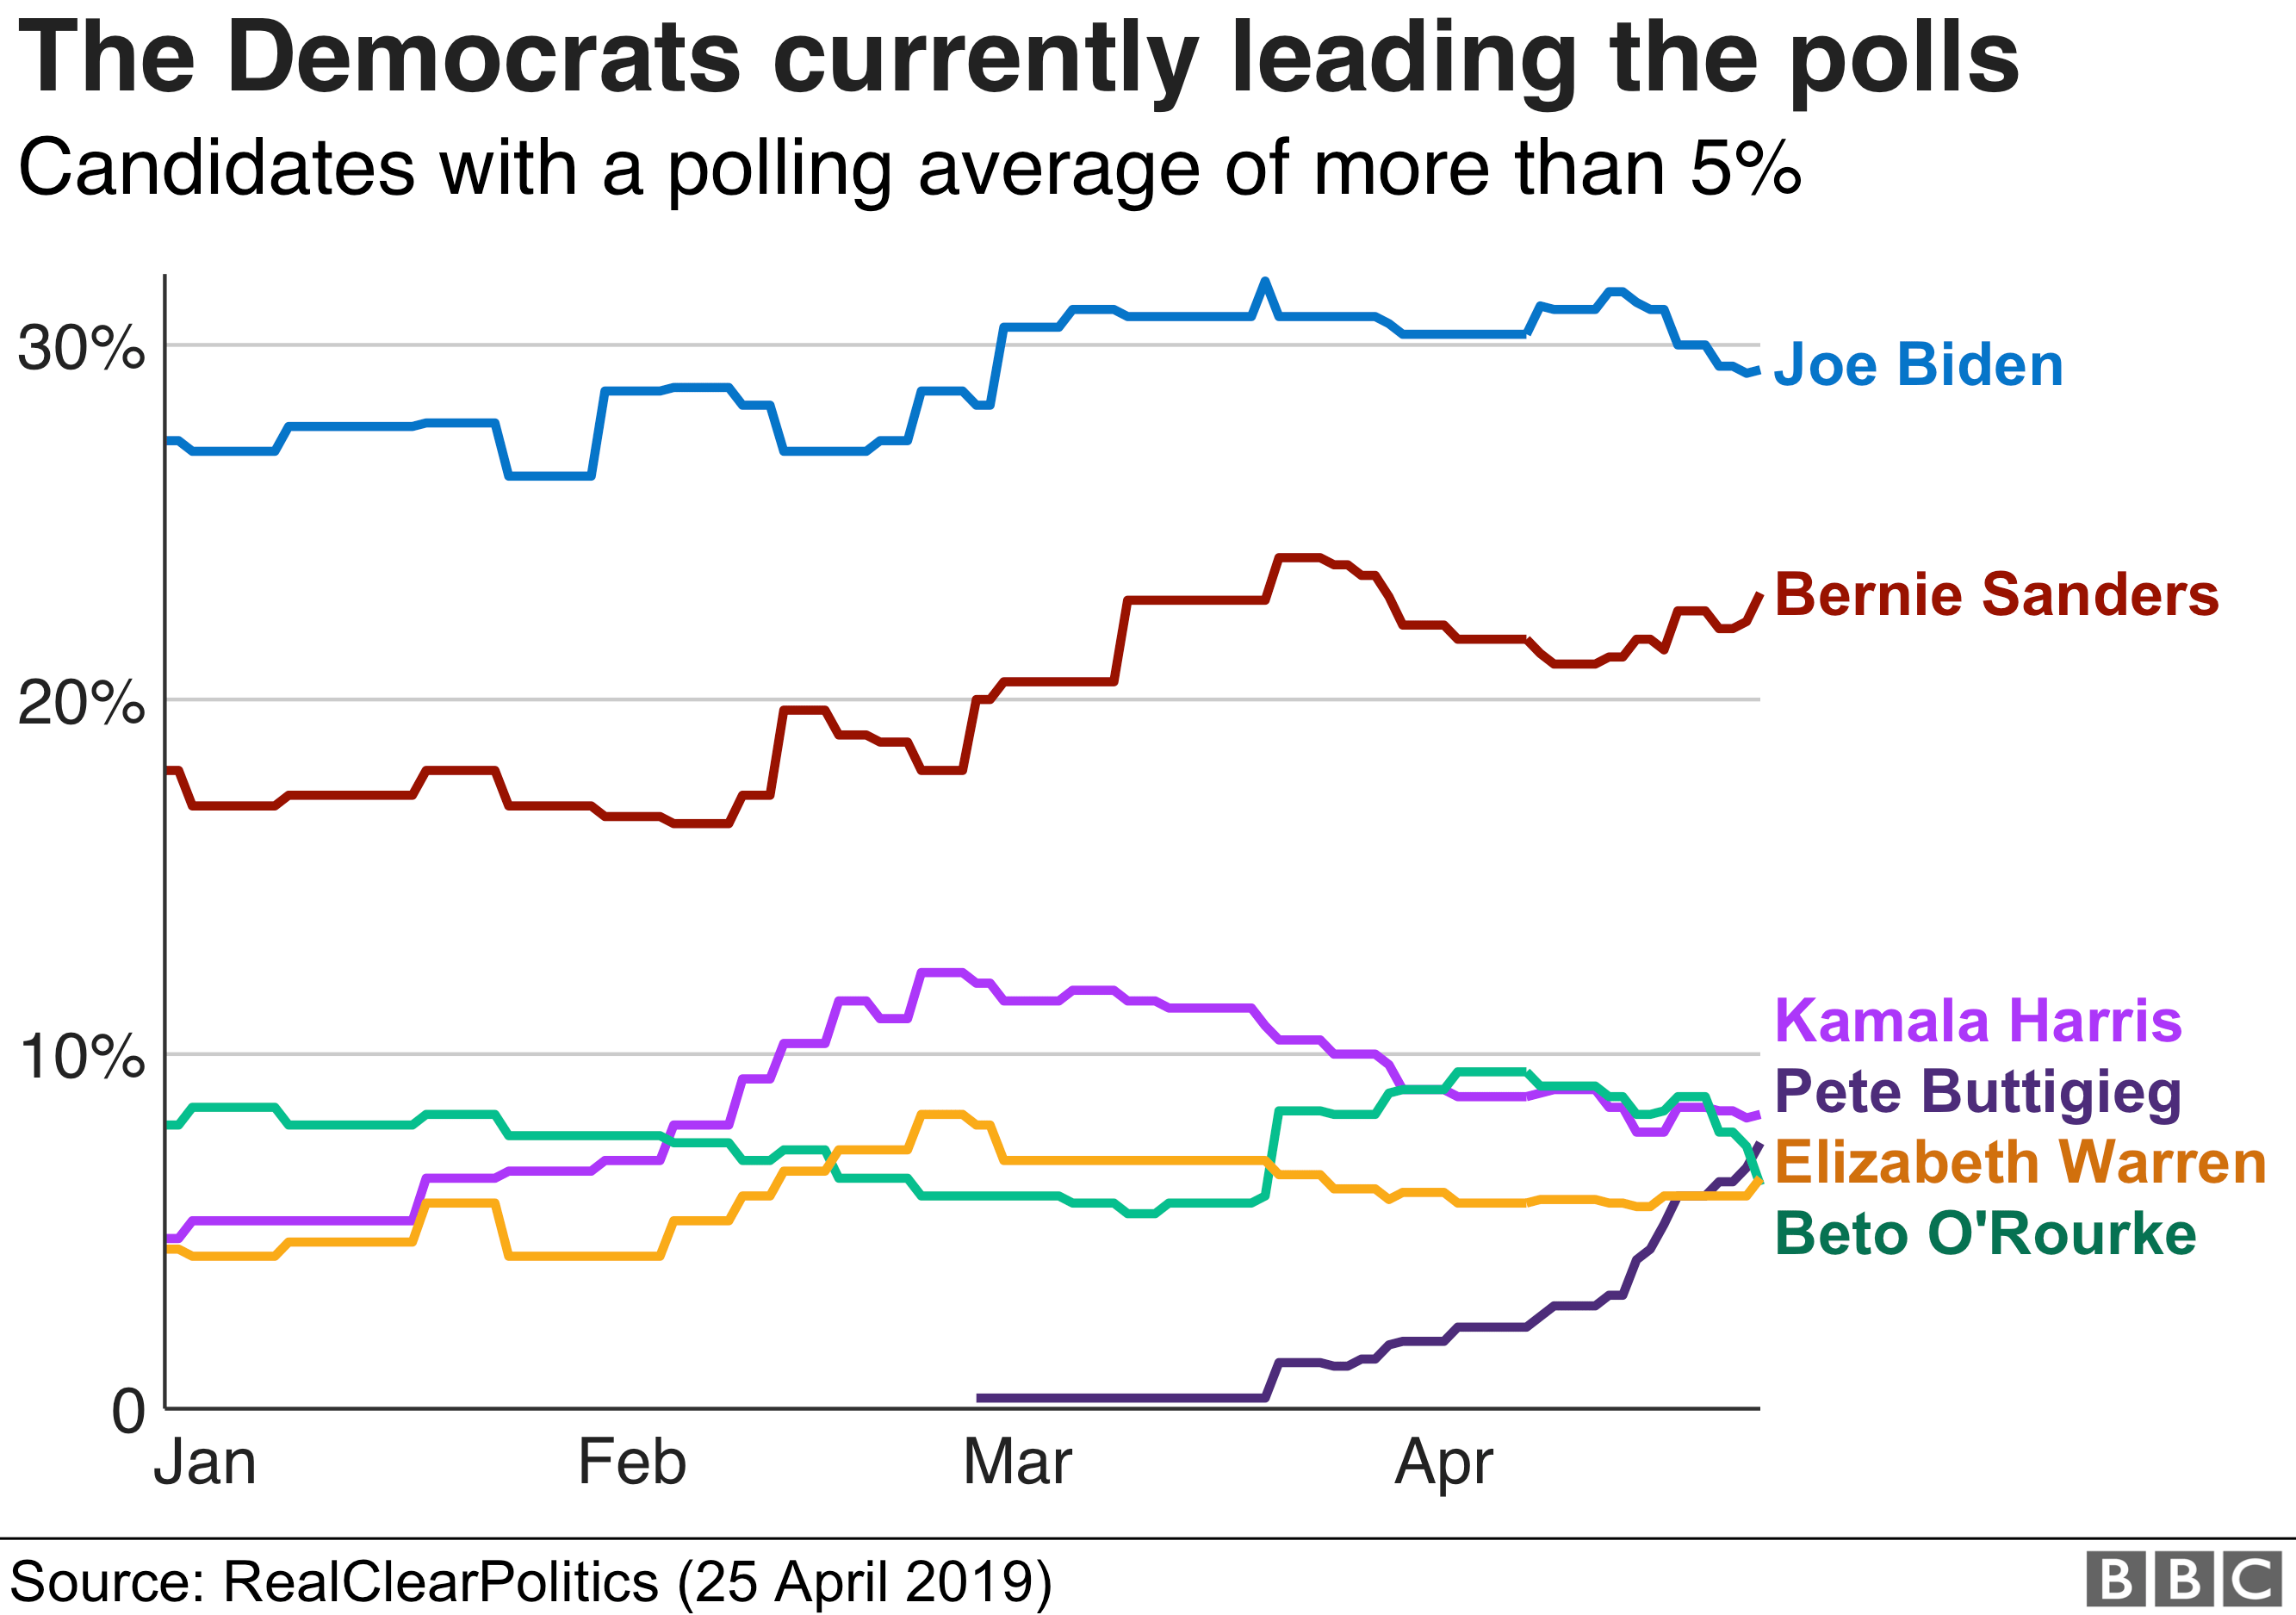 Graph showing the Democratic candidates leading the polls